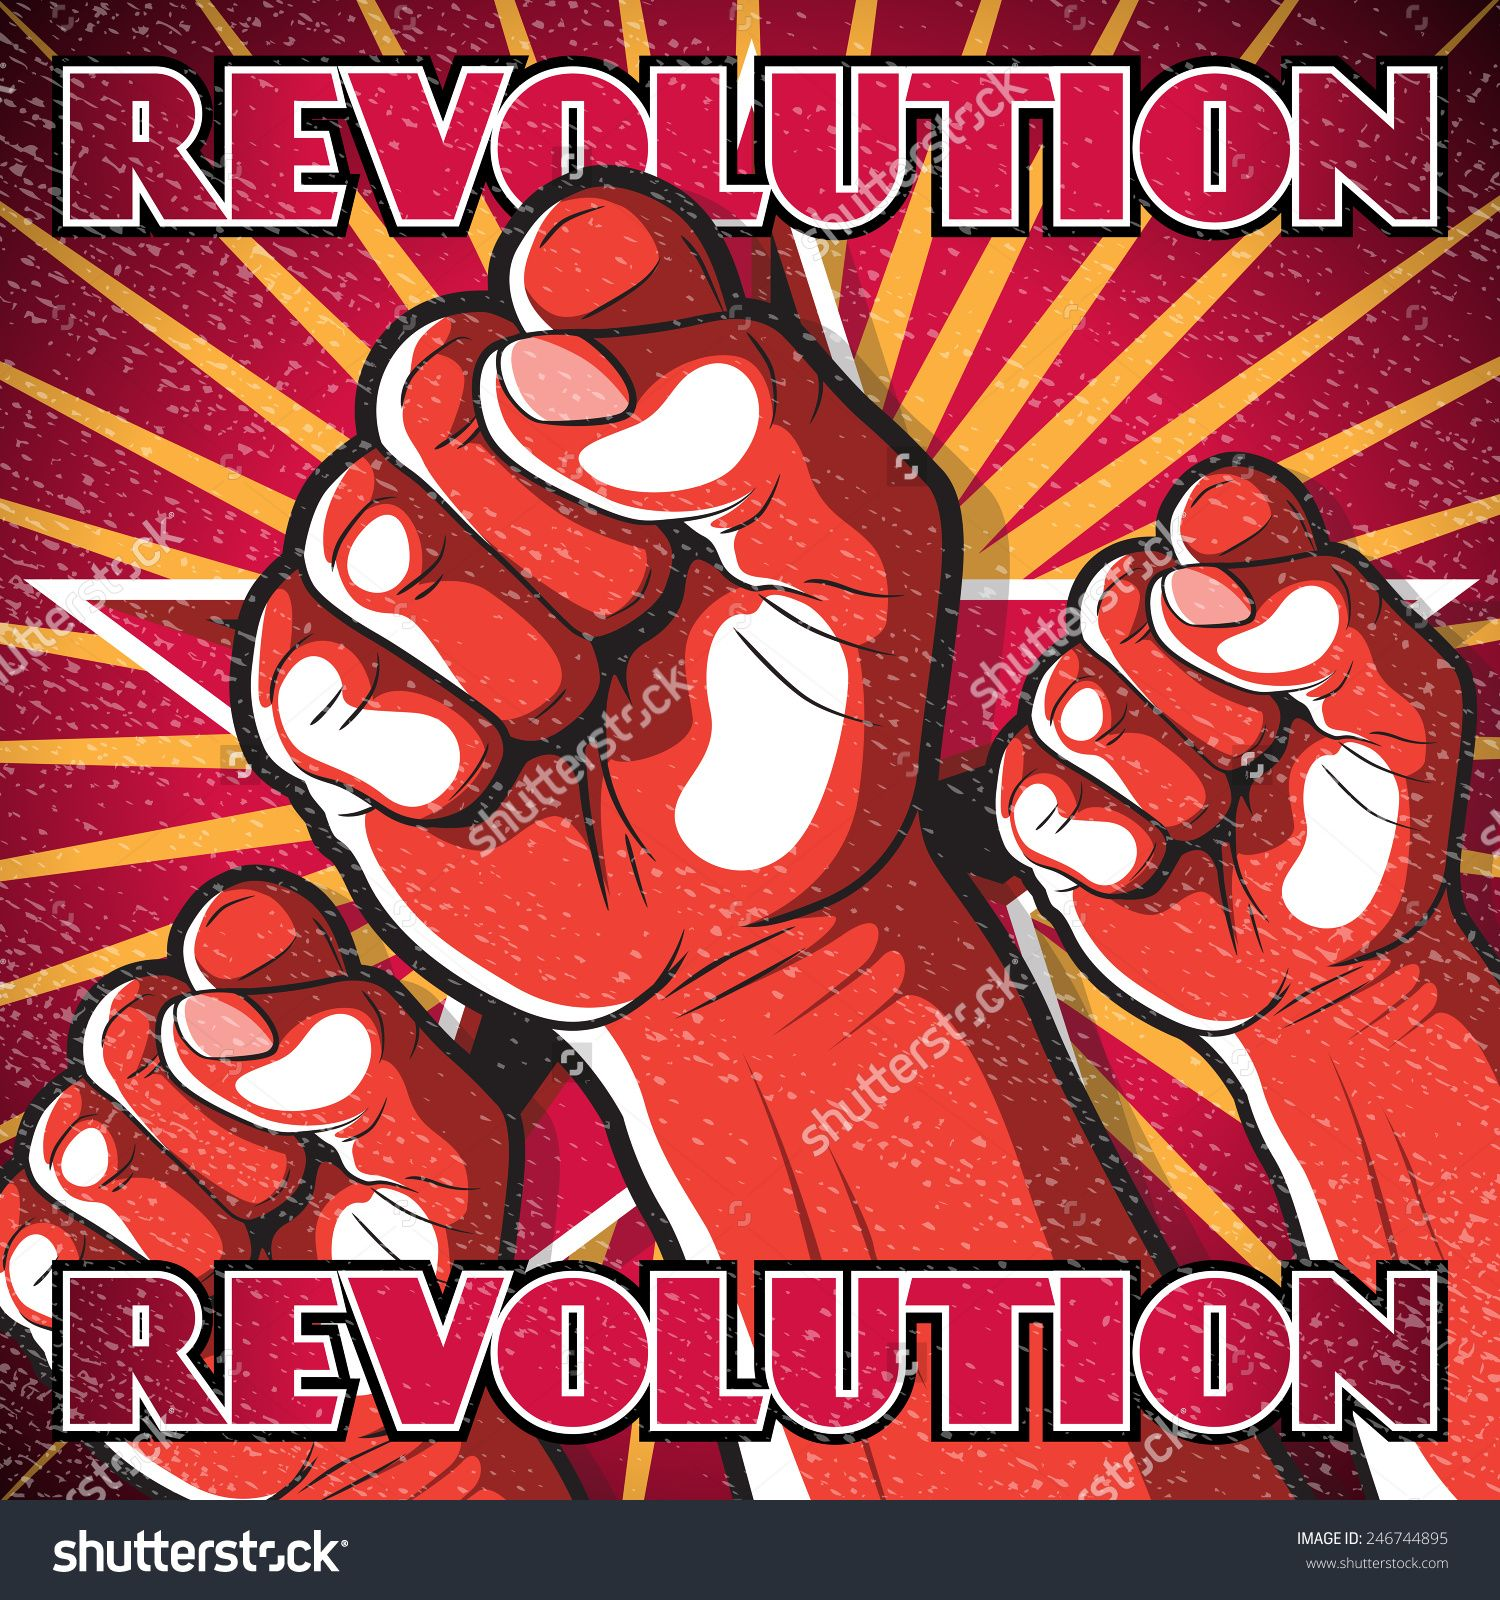 Retro Punching Fist Revolution Sign. Great illustration of Russian Propaganda style punching Fist symbolizing Revolution